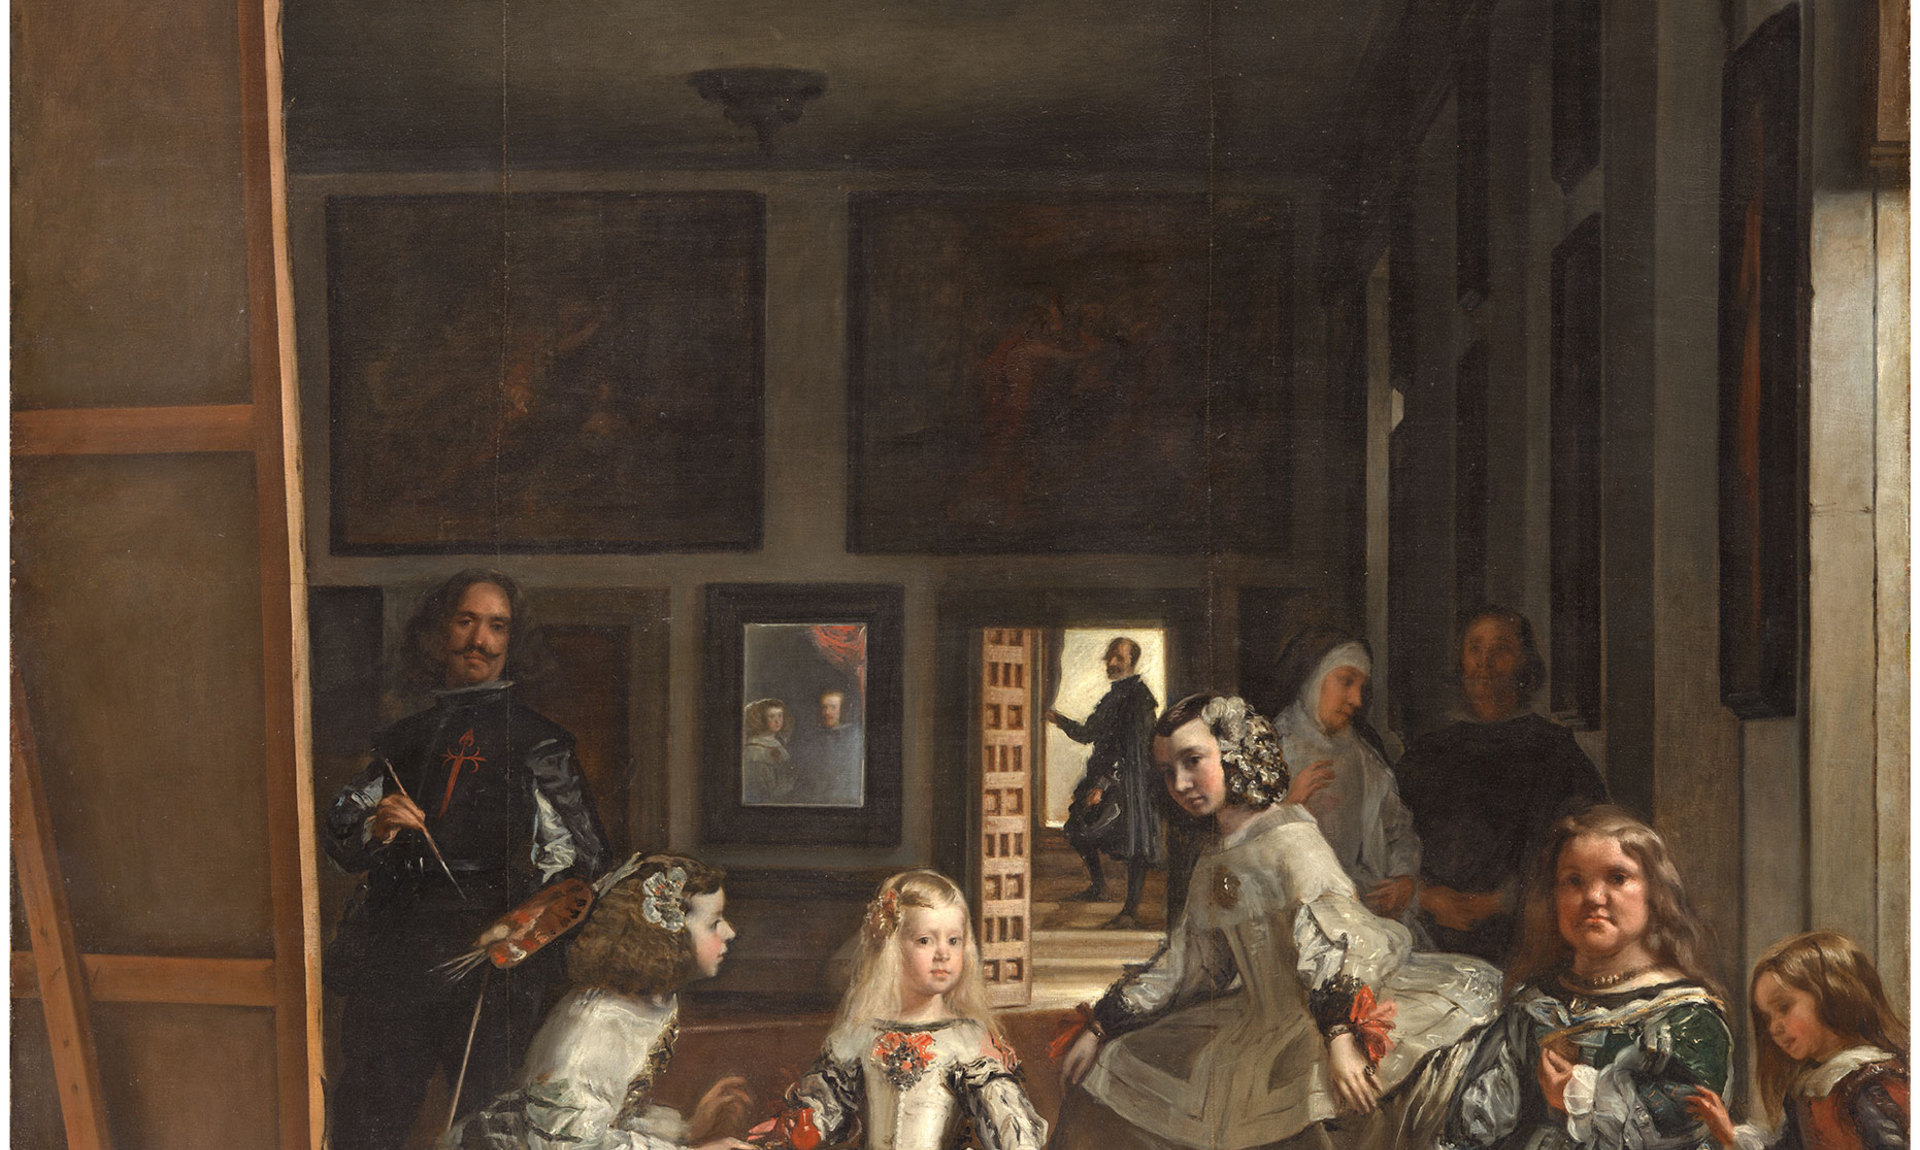 Arts in Cinema: Prado Museum - A Collection of Wonders